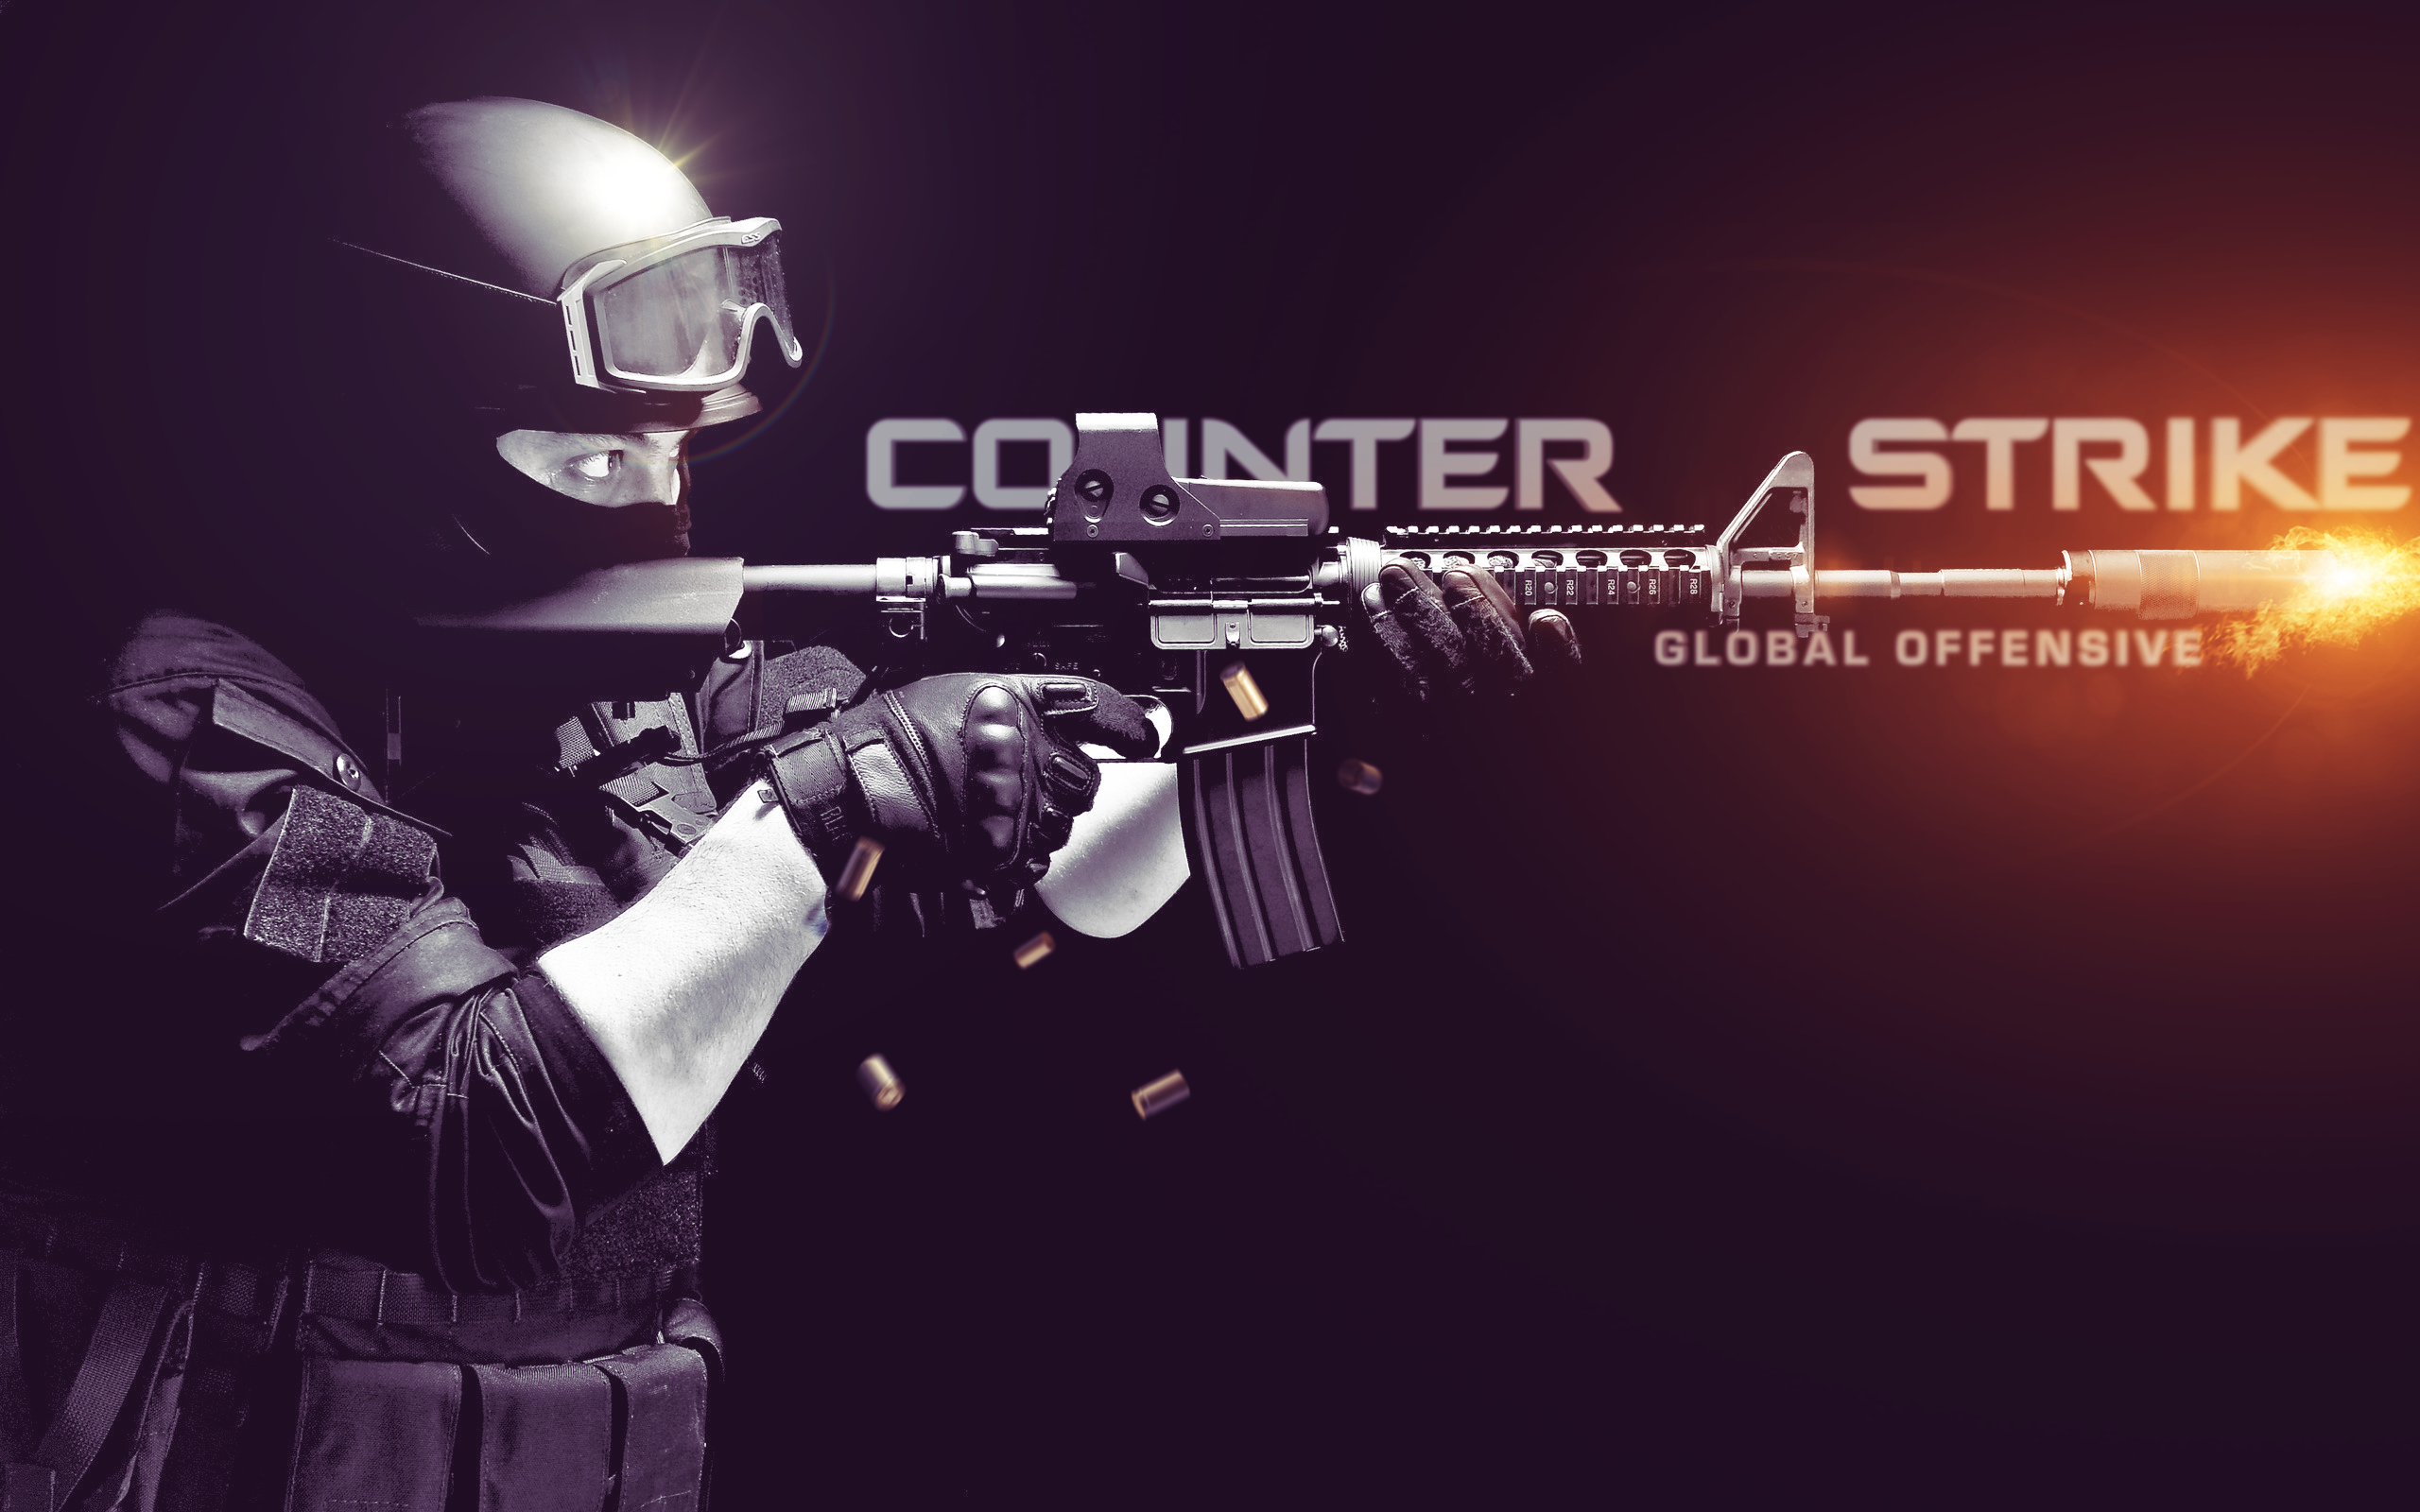 161 counter strike global offensive hd wallpapers background hd wallpaper background image id587593 2560x1600 video game counter strike global offensive voltagebd